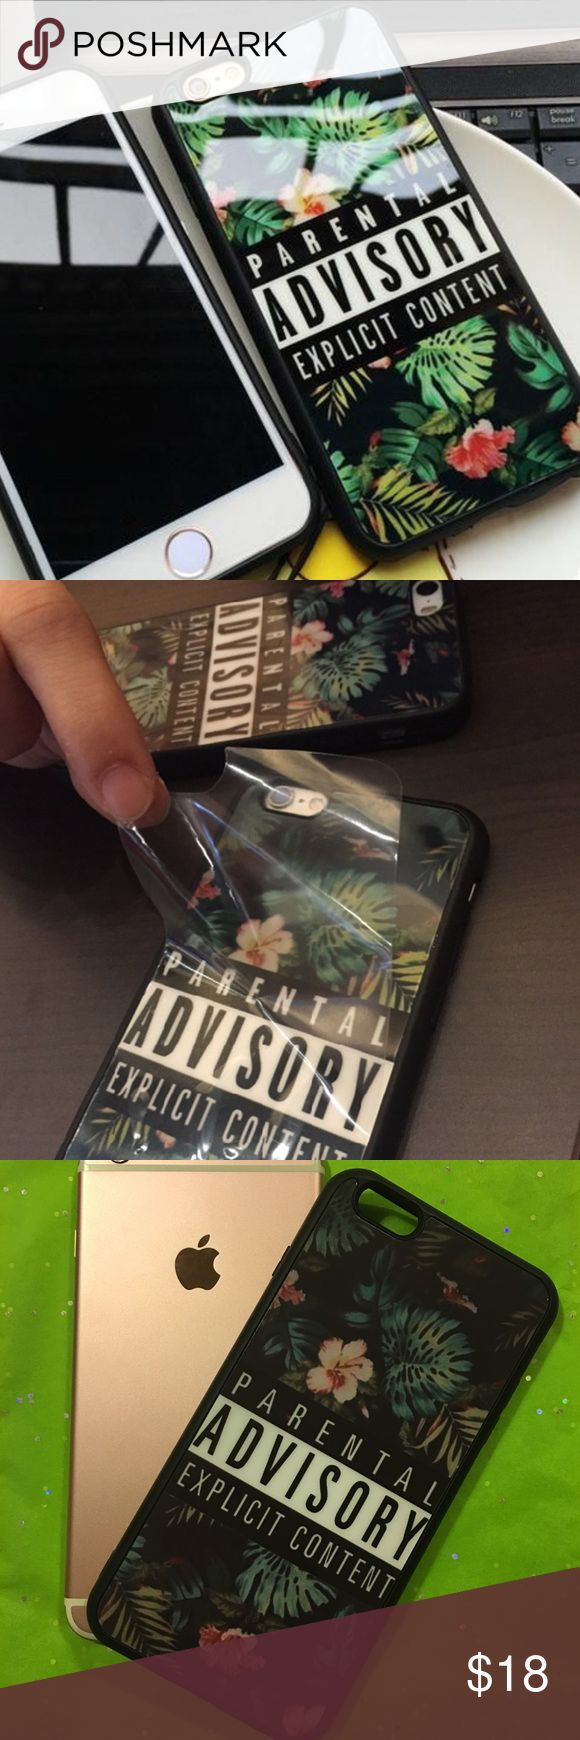 """*NEW* Awesome iPhone 6+/ 6s+ case  Soft silicone glossy phone case, really cool, featuring tropical floral art and fun """"Parental Advisory"""" graphics. Fits iPhone 6+/ 6s+ New in factory package  Accessories Phone Cases"""